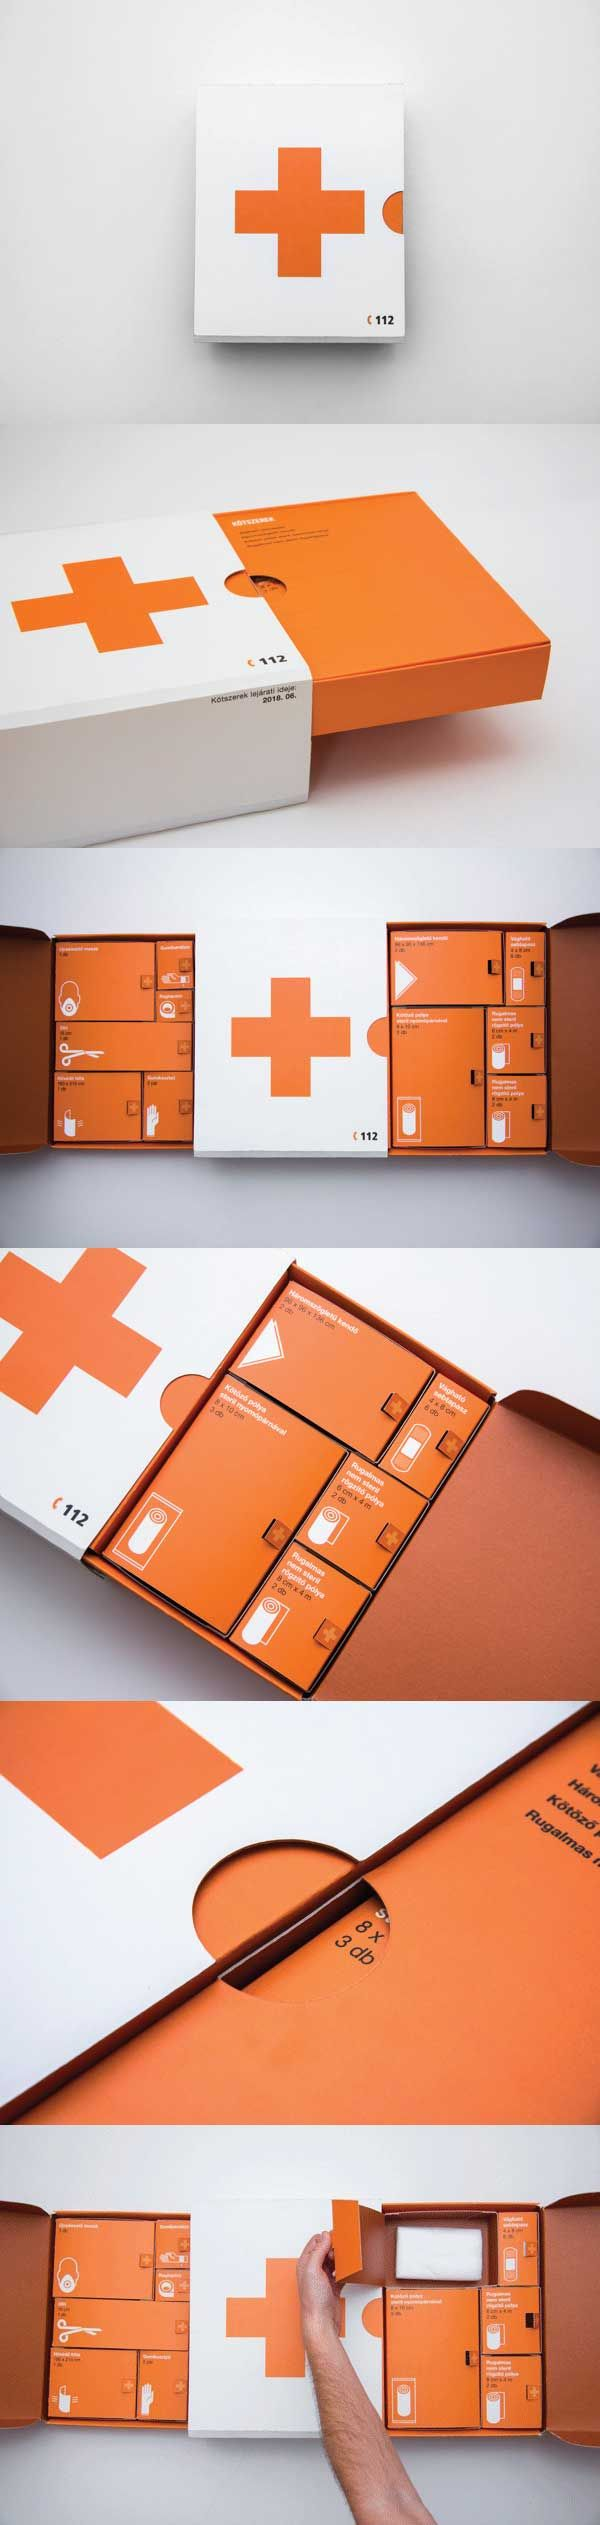 First Aid Kit by Kevin Harald Campean